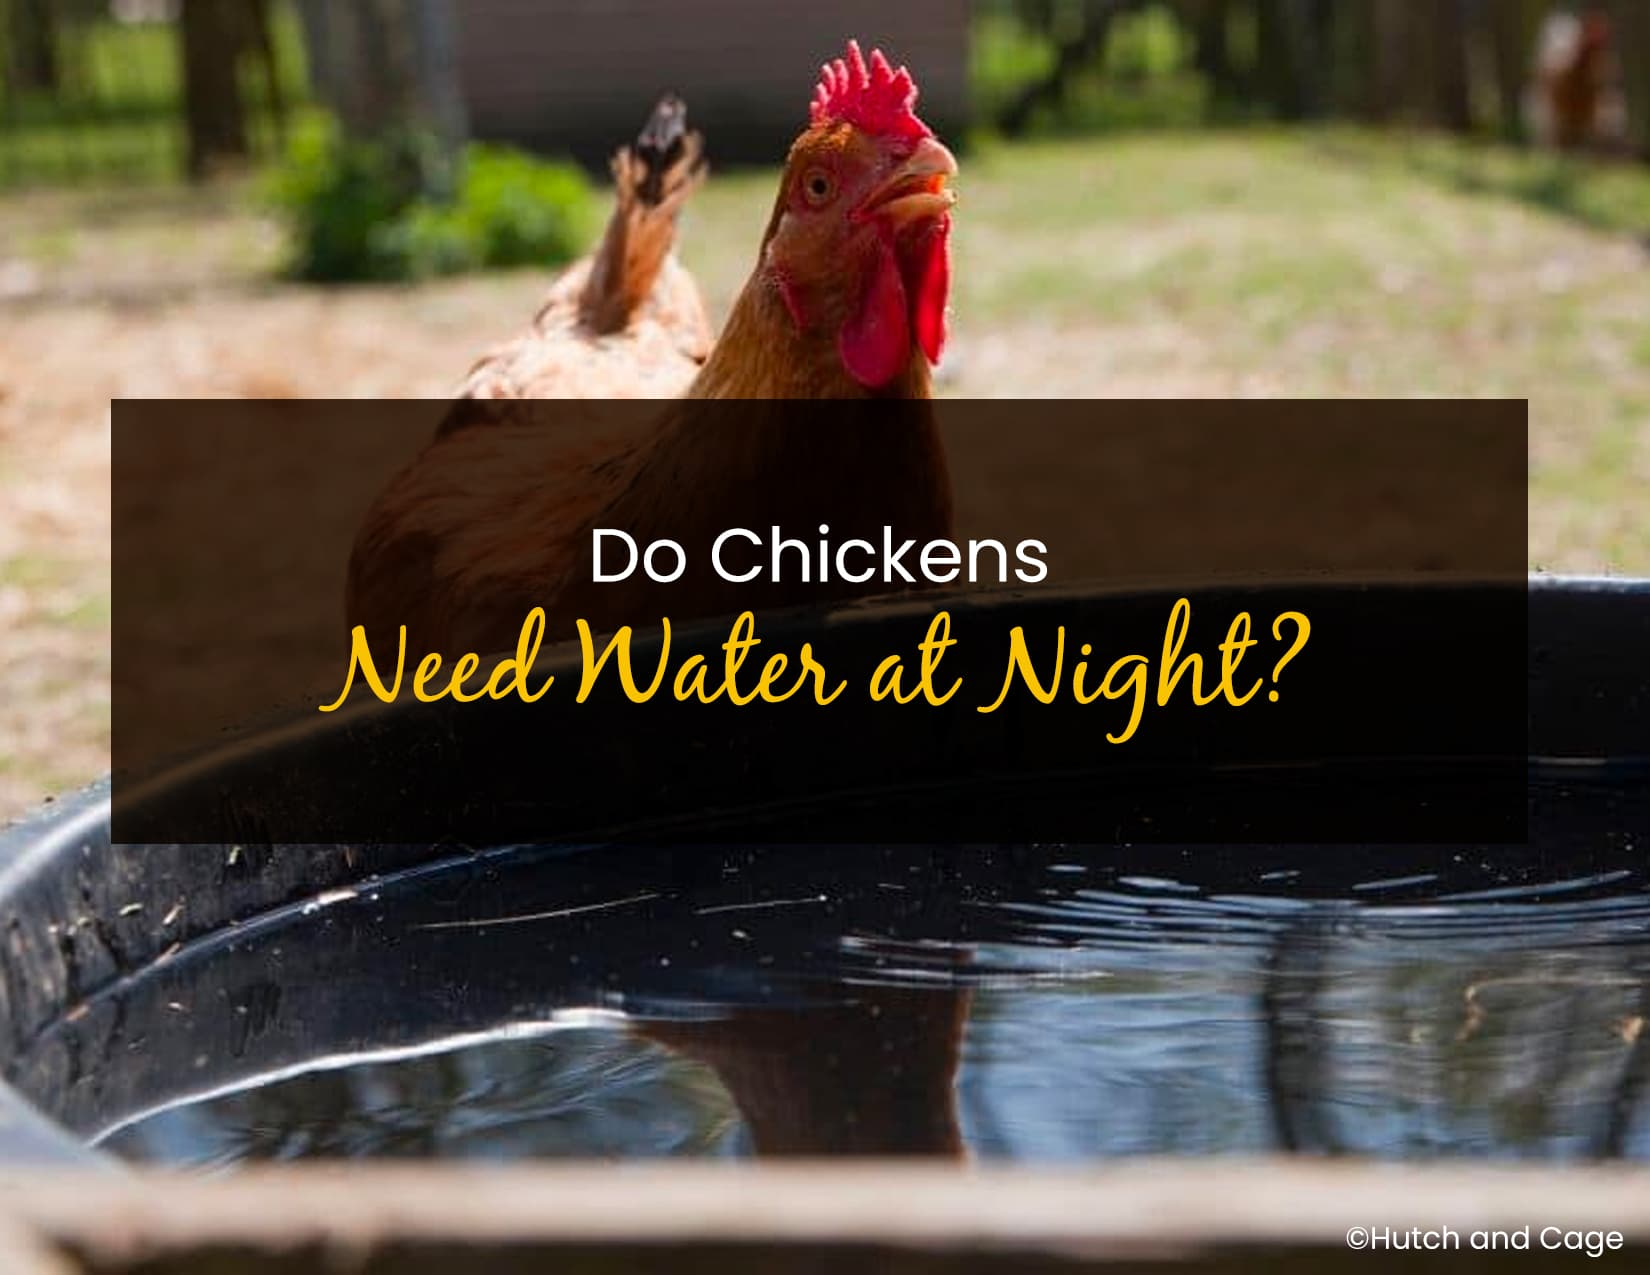 Do Chickens Need Water at Night